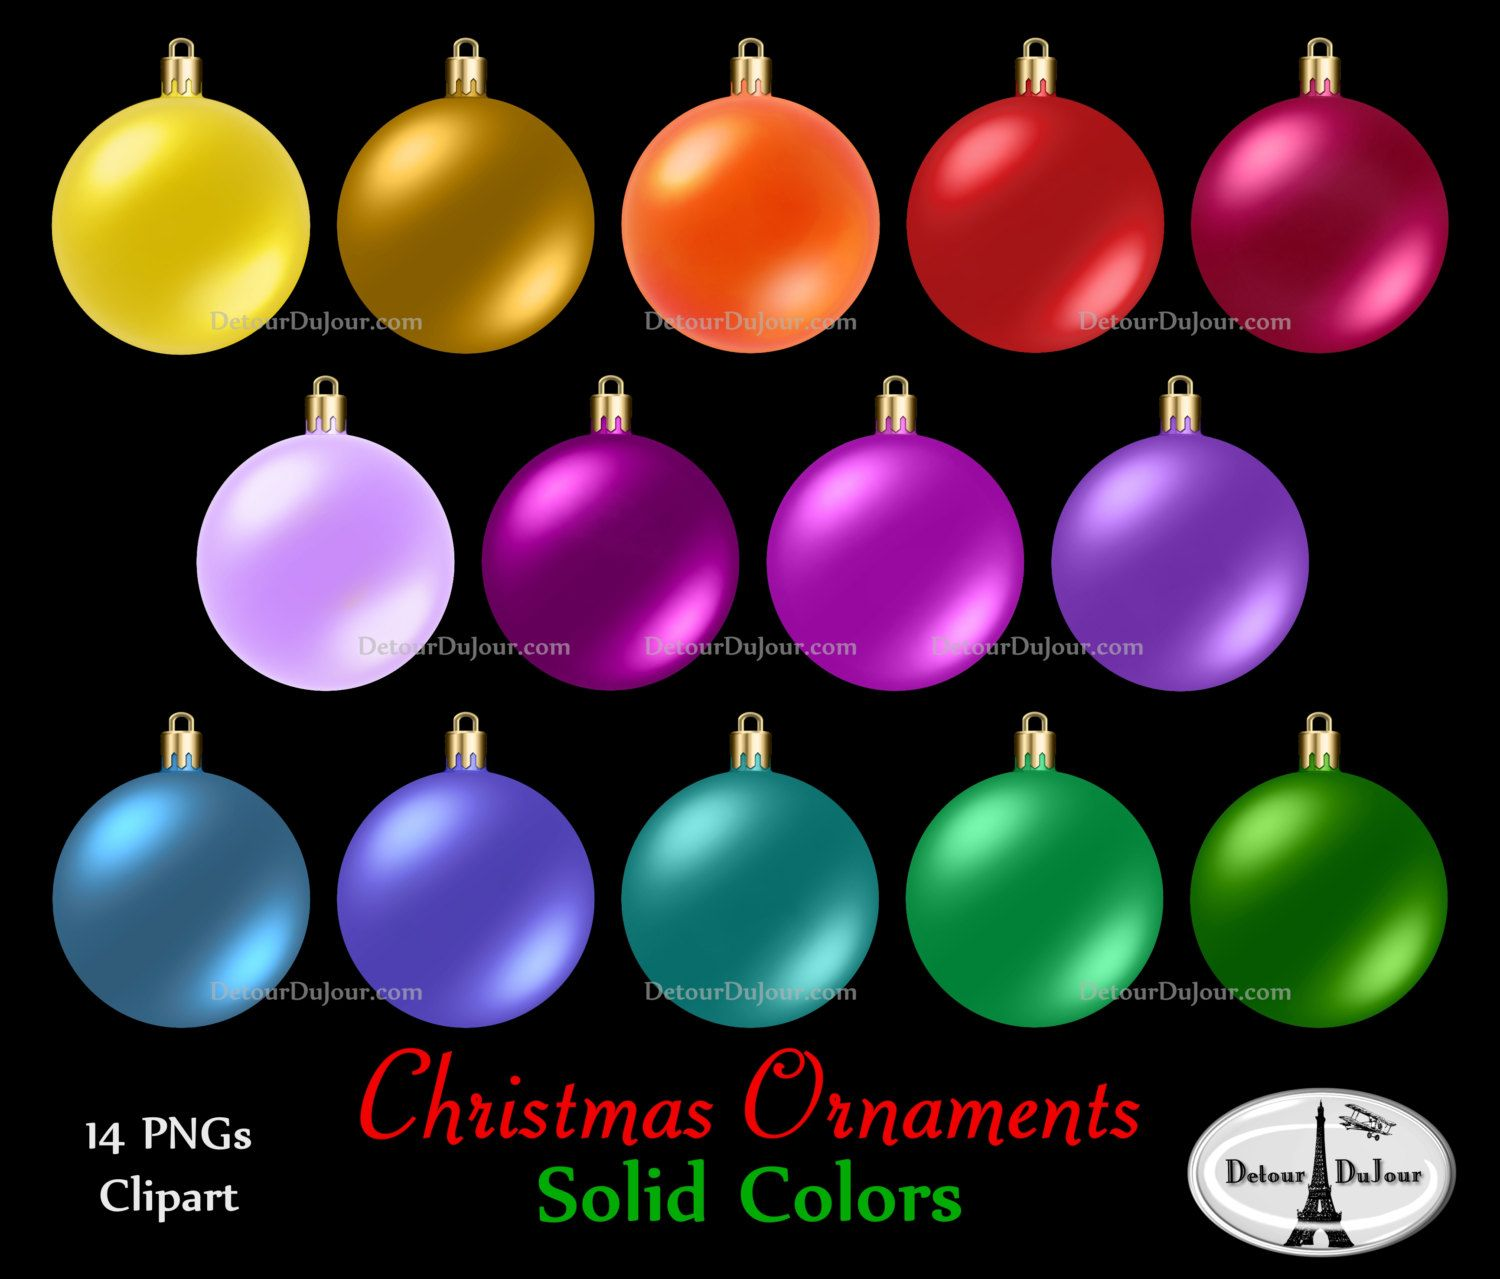 Christmas ornament clipart to color graphic library stock 14 Assorted Christmas Ornaments Clipart, Plain Christmas Ornament ... graphic library stock